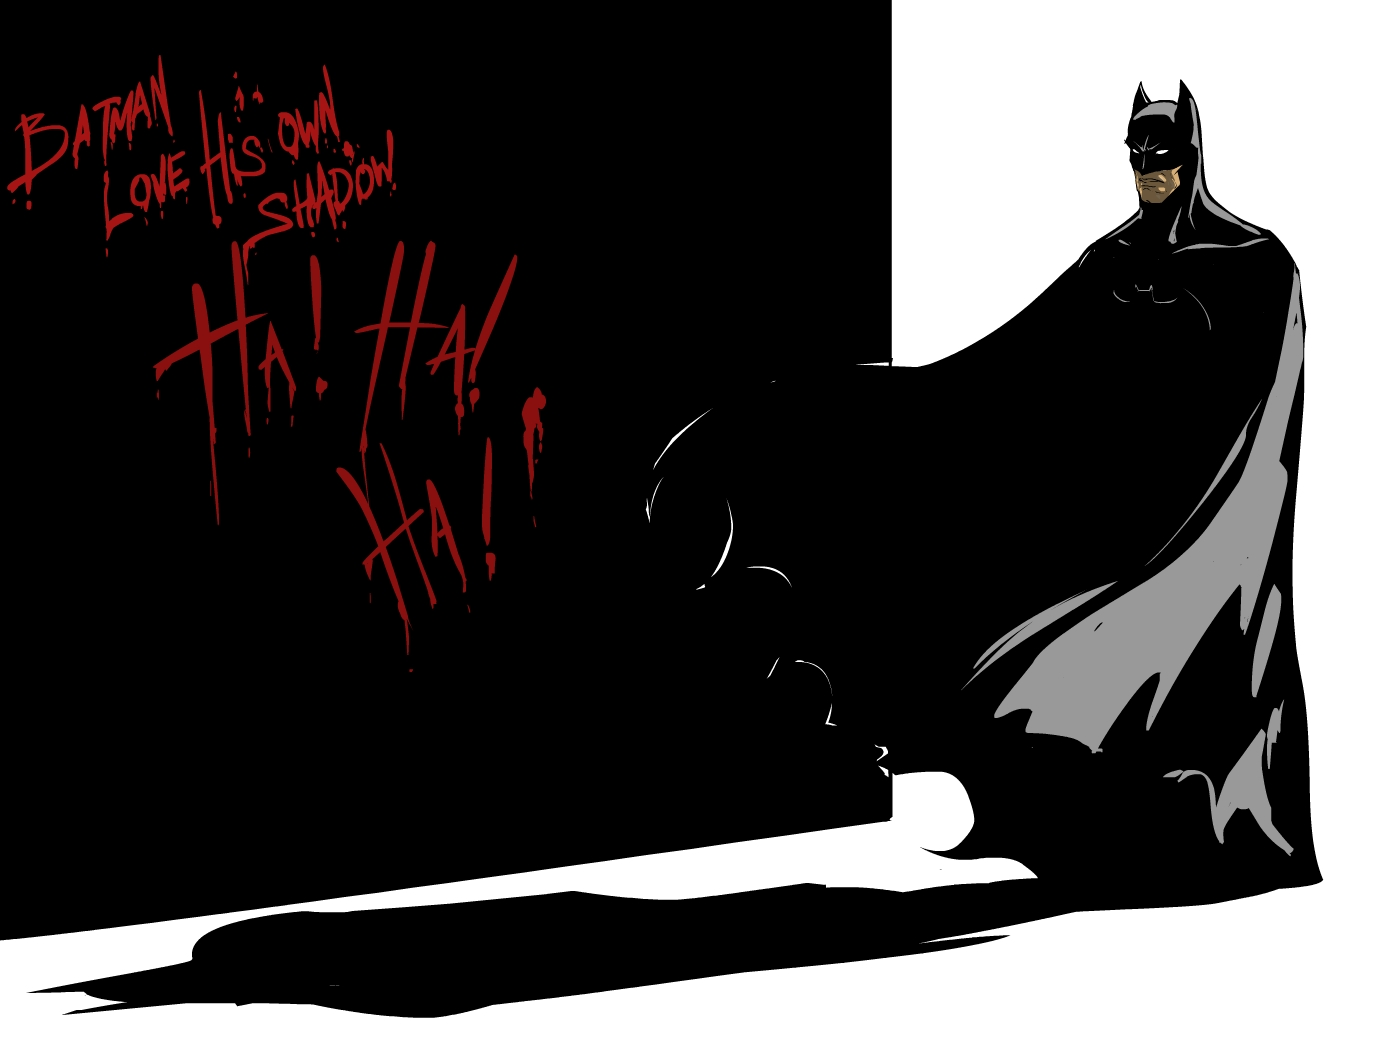 batman_on_his_own_shadow_by_evil1980-d2ztror